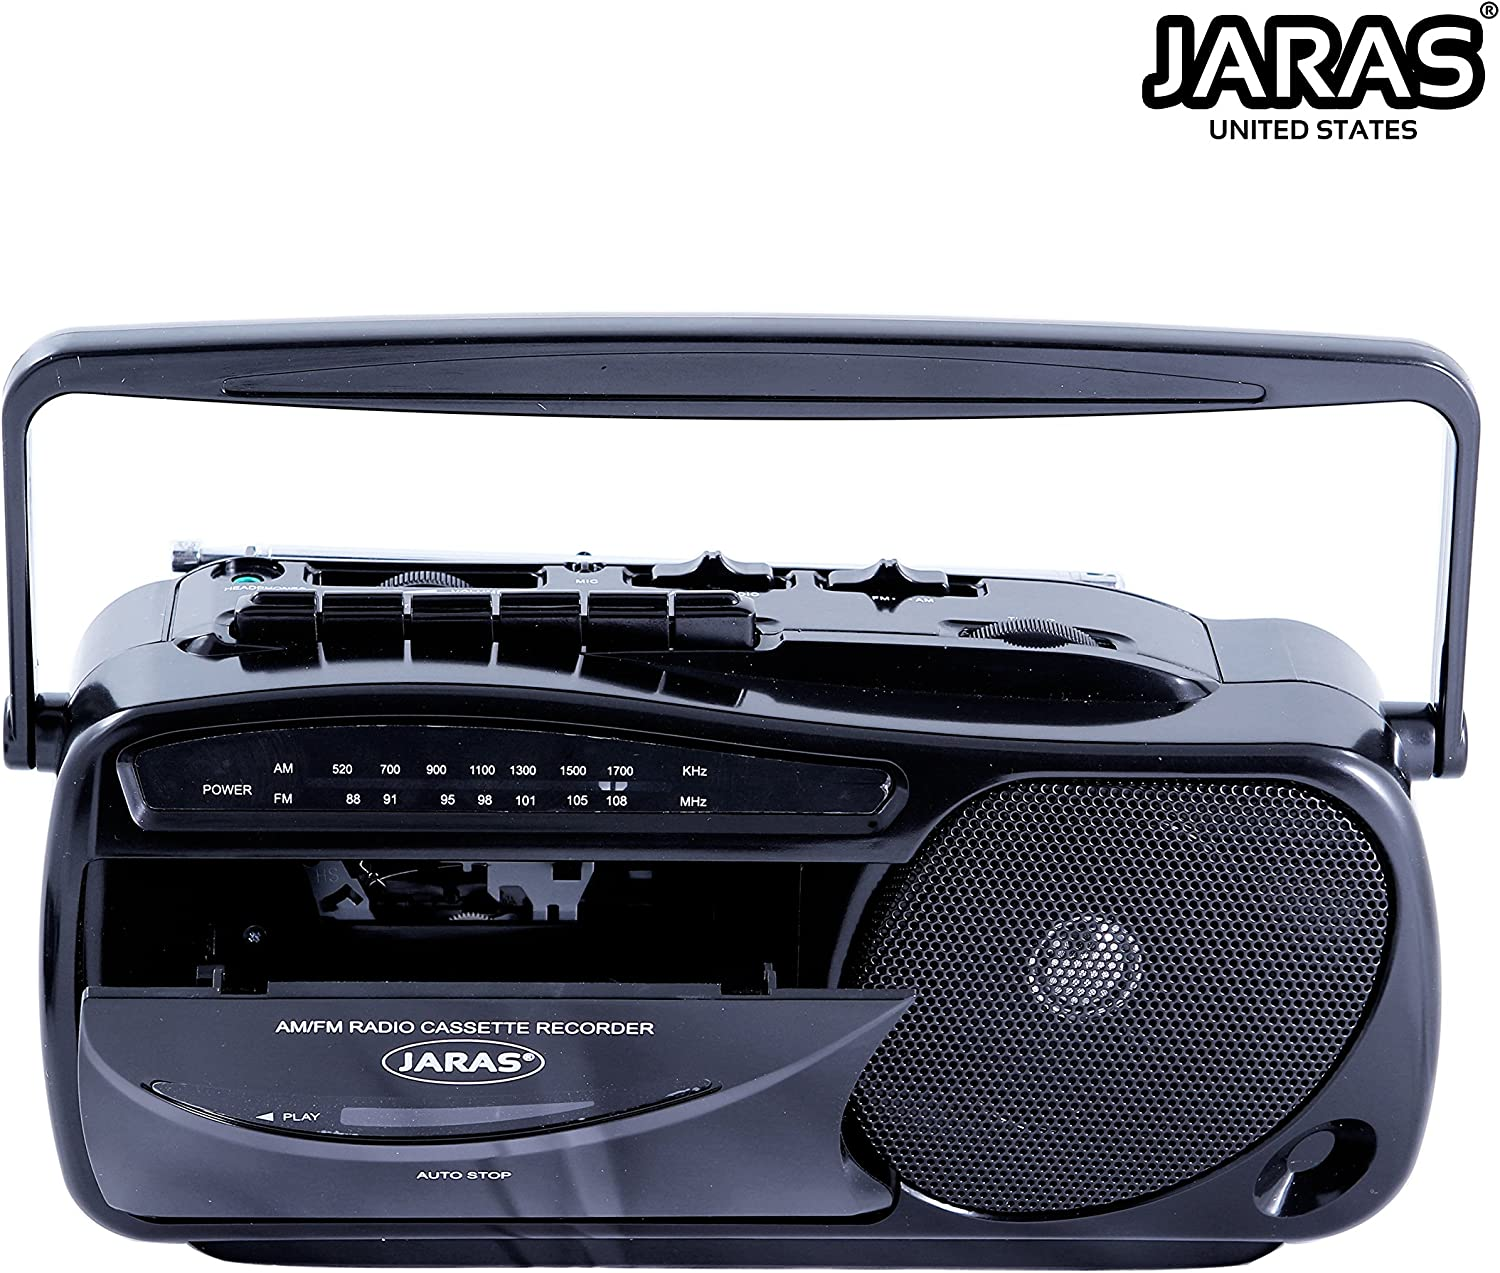 B00YHY1GGC Jaras JJ-2618 Limited Edition Portable Boombox Tape Cassette Player/Recorder with AM/FM Radio Stereo Speakers & Headphone Jack 91WtheD242L